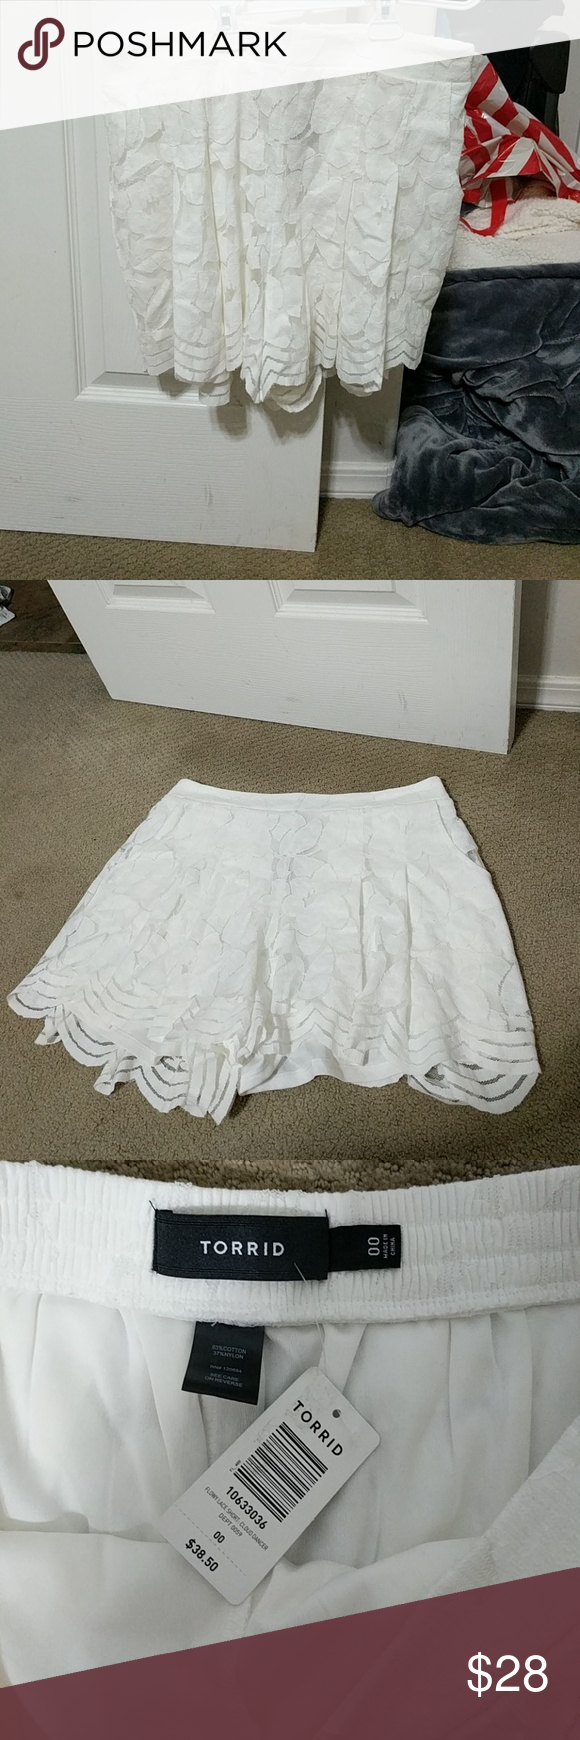 Torrid lace flowy shorts size 00/10 New with tags. Torrid 00 is equal to a women's 10 torrid Shorts